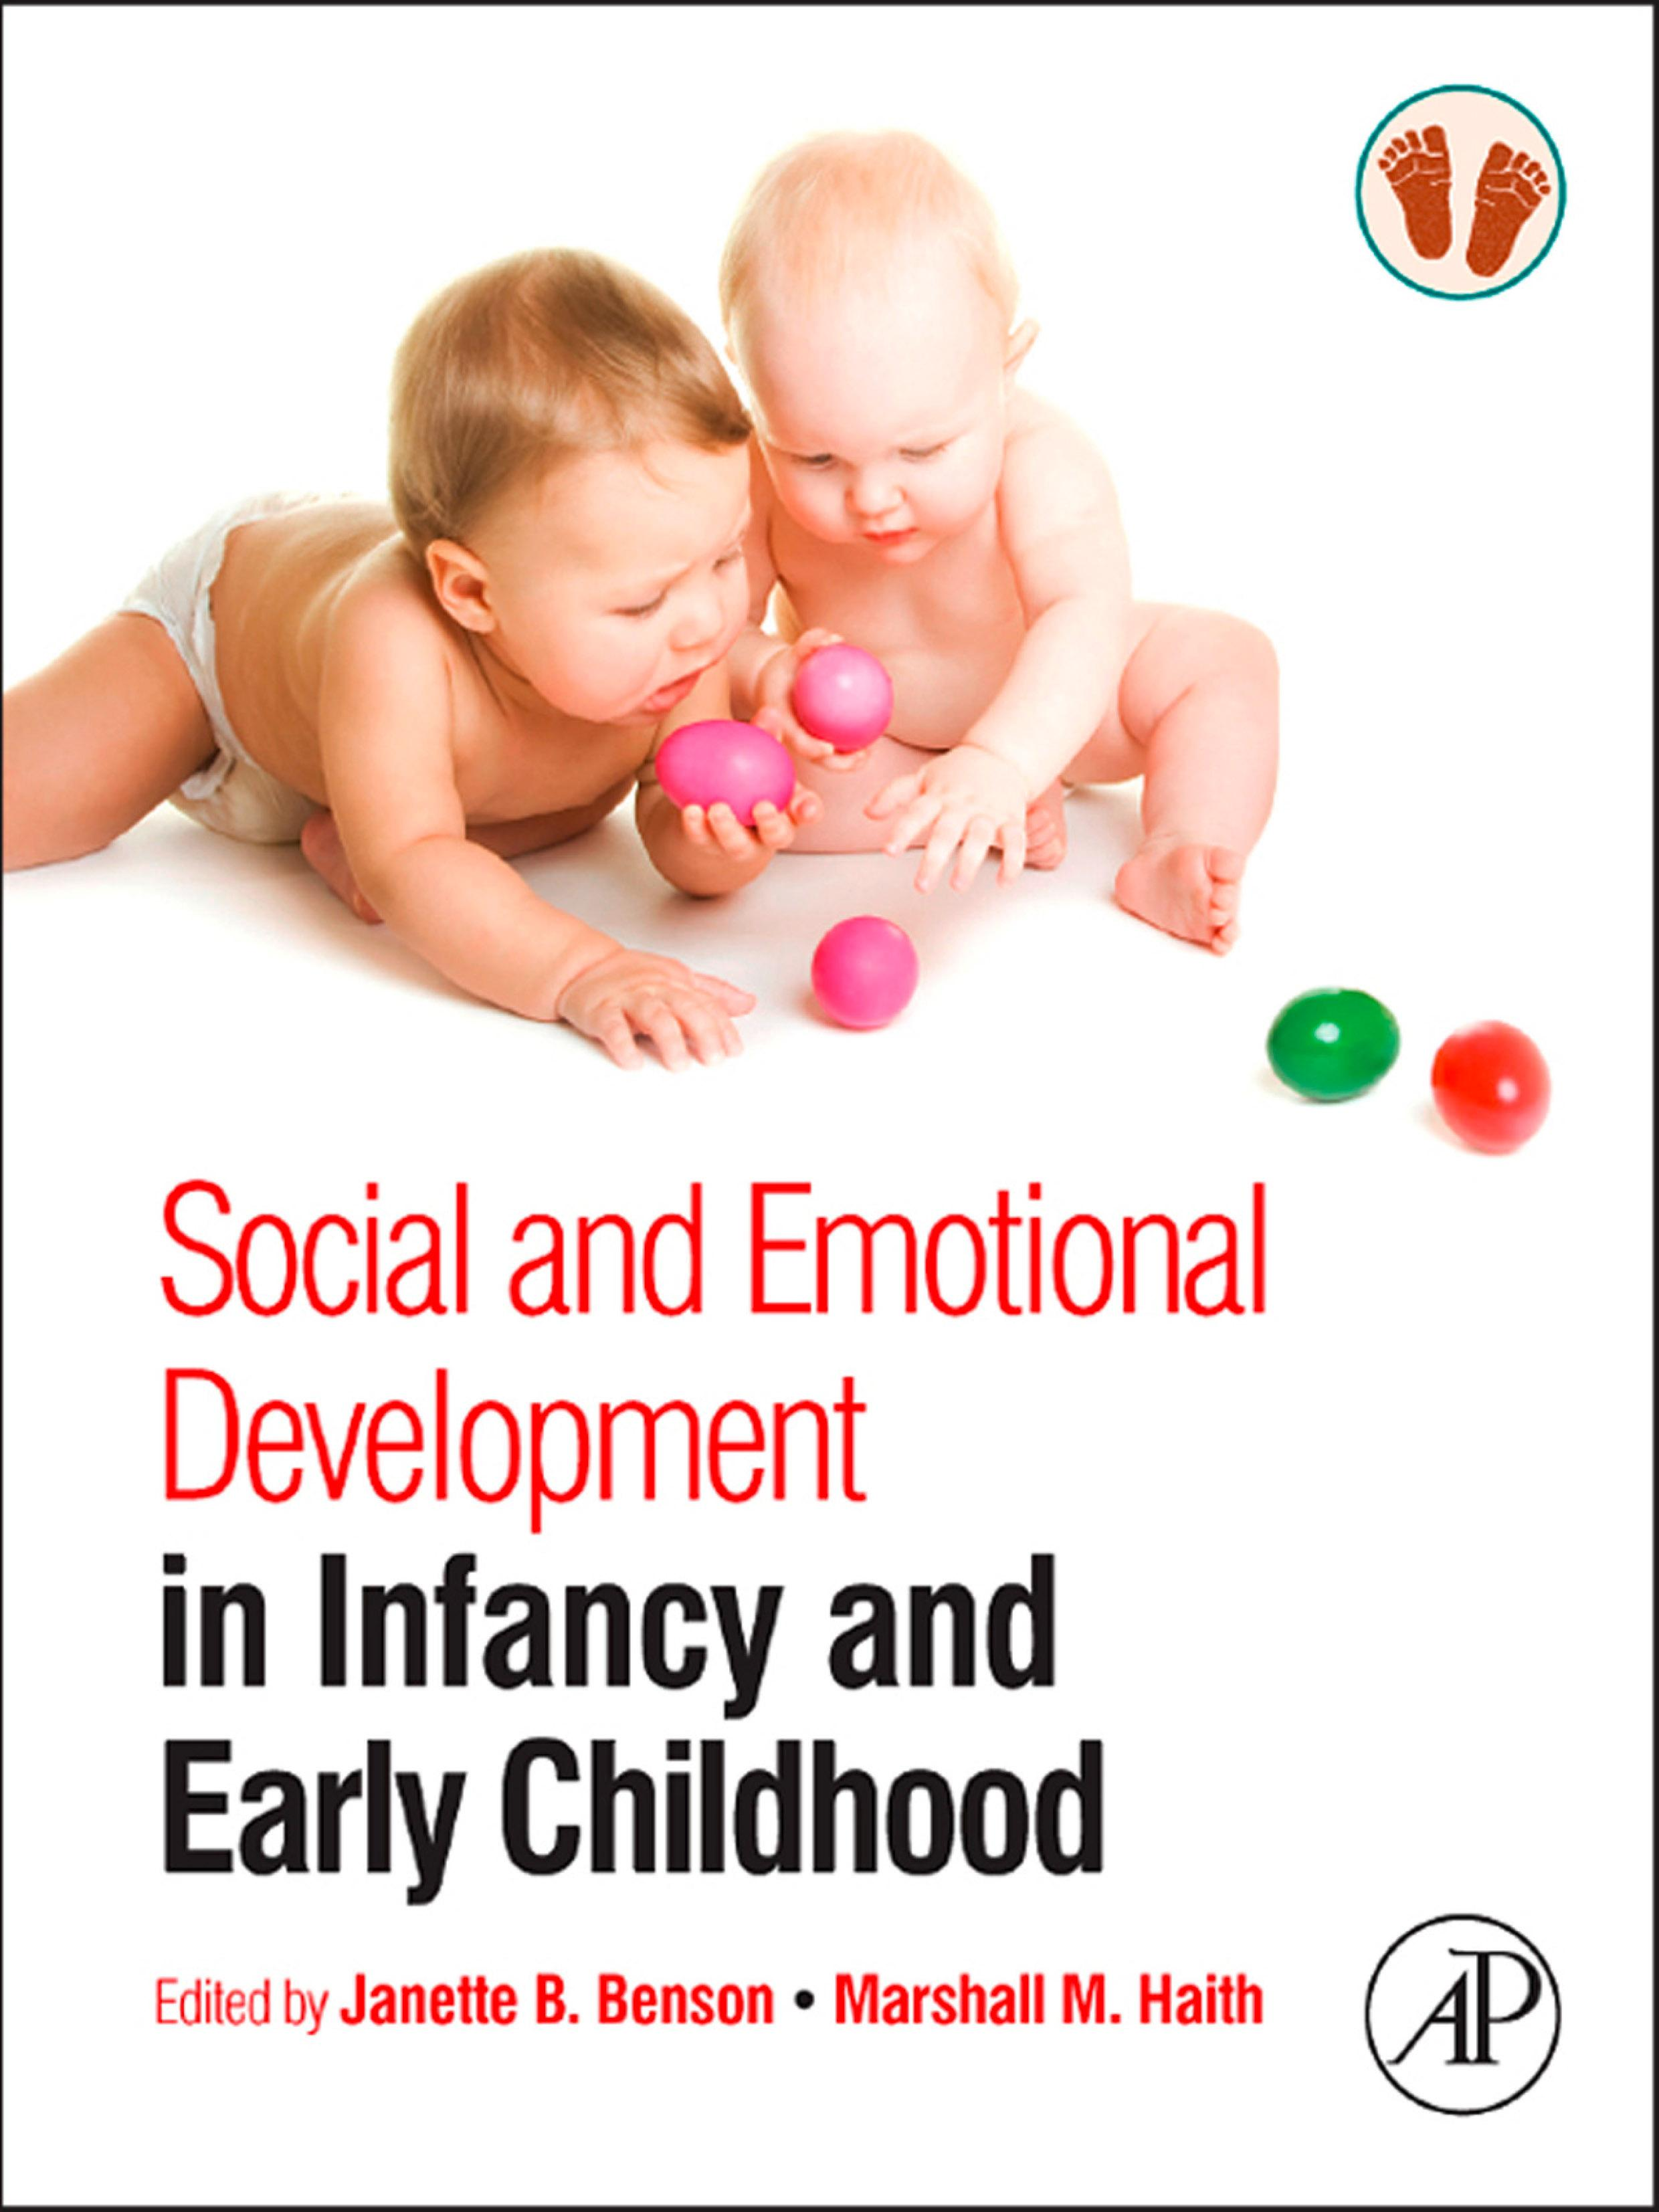 social and emotional development in early childhood essay As we have reiterated throughout this series of developmental articles, every child develops at his or her own pace many factors, both internal and external, can impact a child's level of emotional development internally, temperament (the innate or genetic component of an individual's personality) can affect.